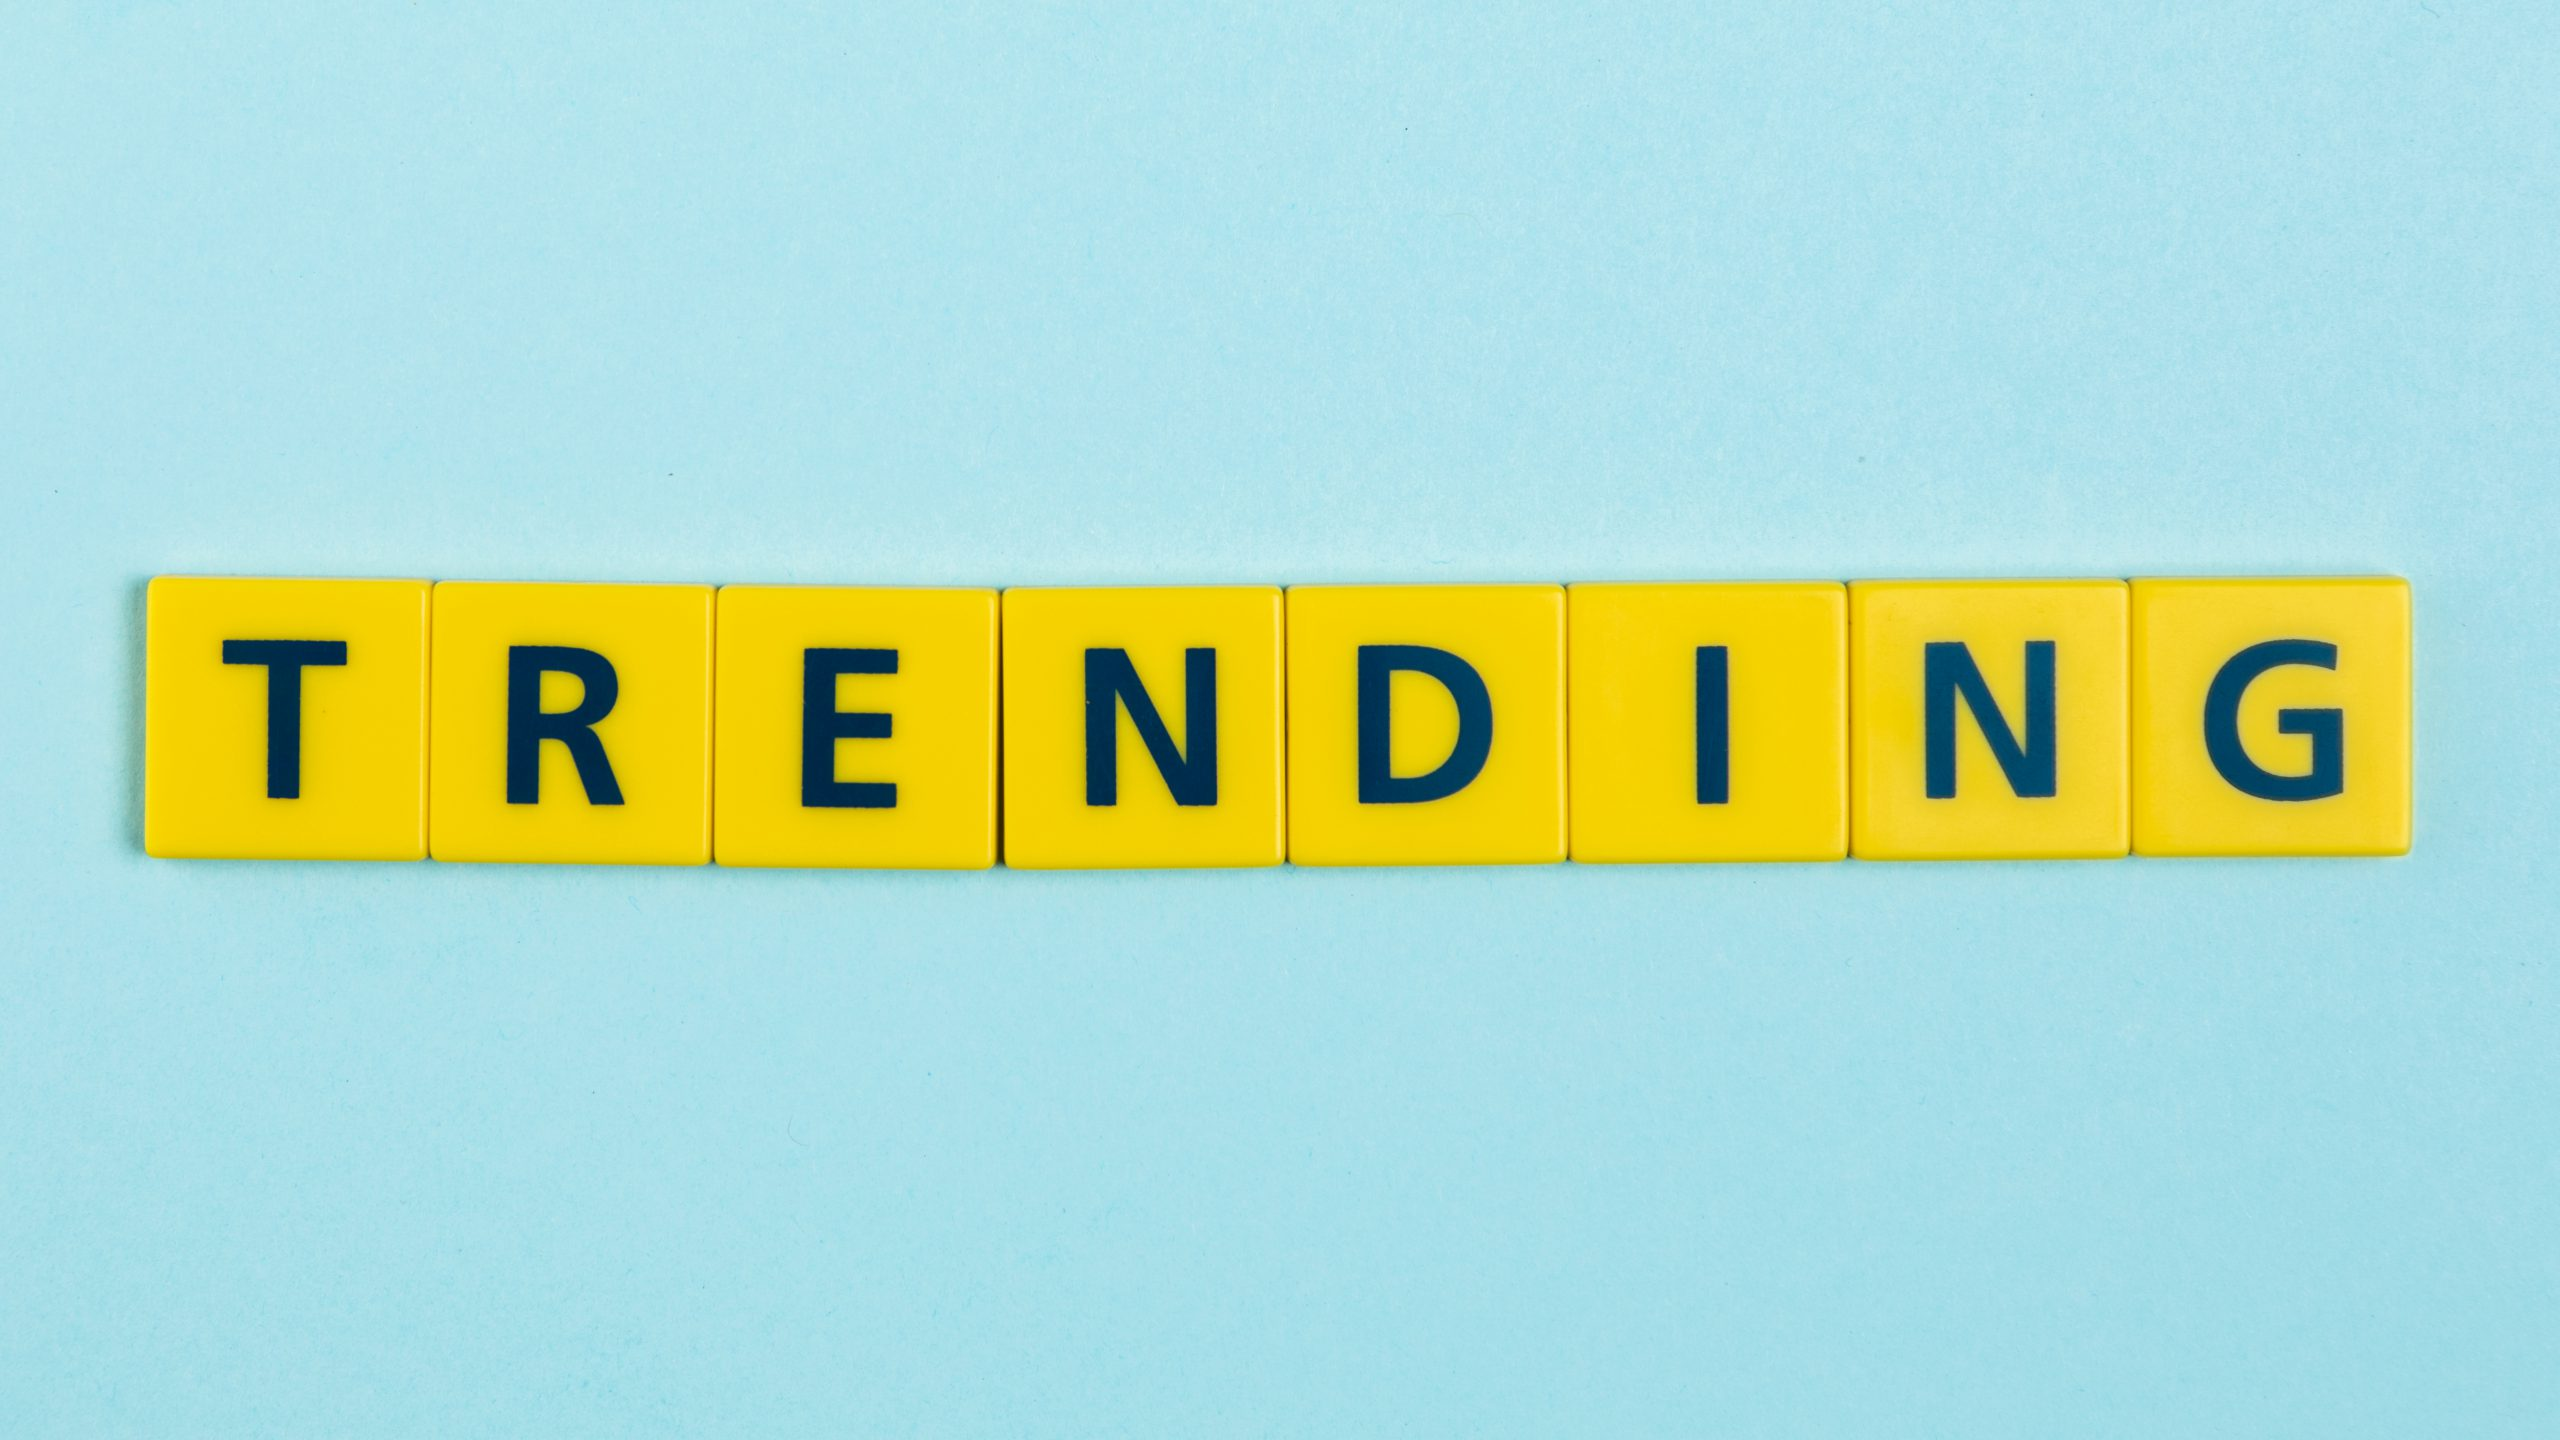 4 management healthcare trends that you cannot miss to improve your team performance